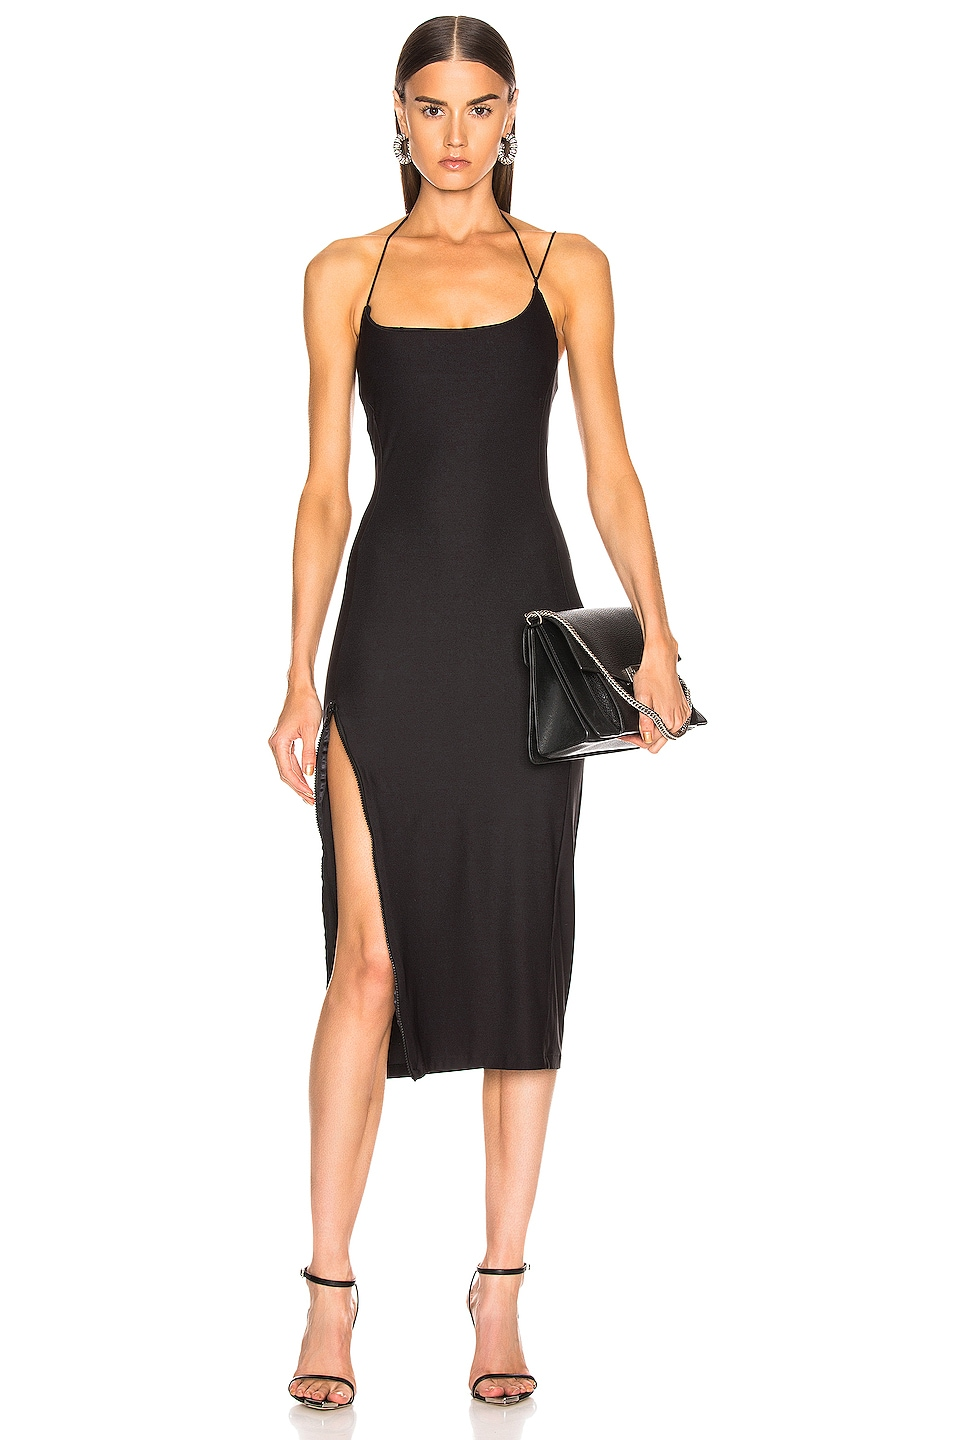 Alix ALIX KENMARE DRESS IN BLACK